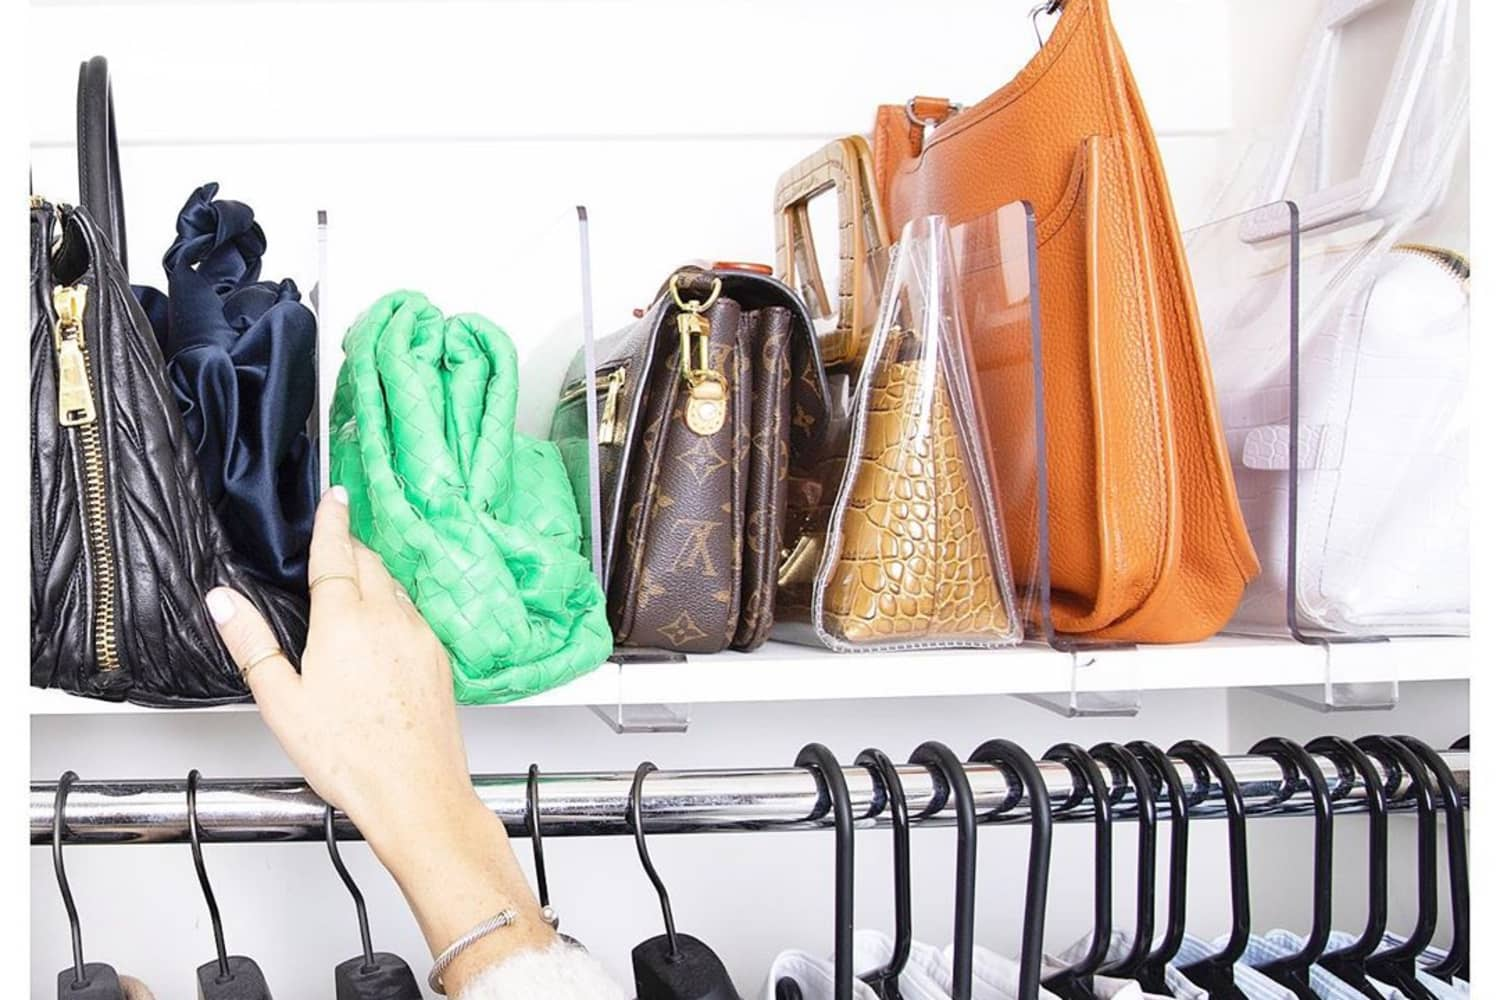 17 Purse Storage Ideas - How to Store Purses & Handbags | Apartment Therapy